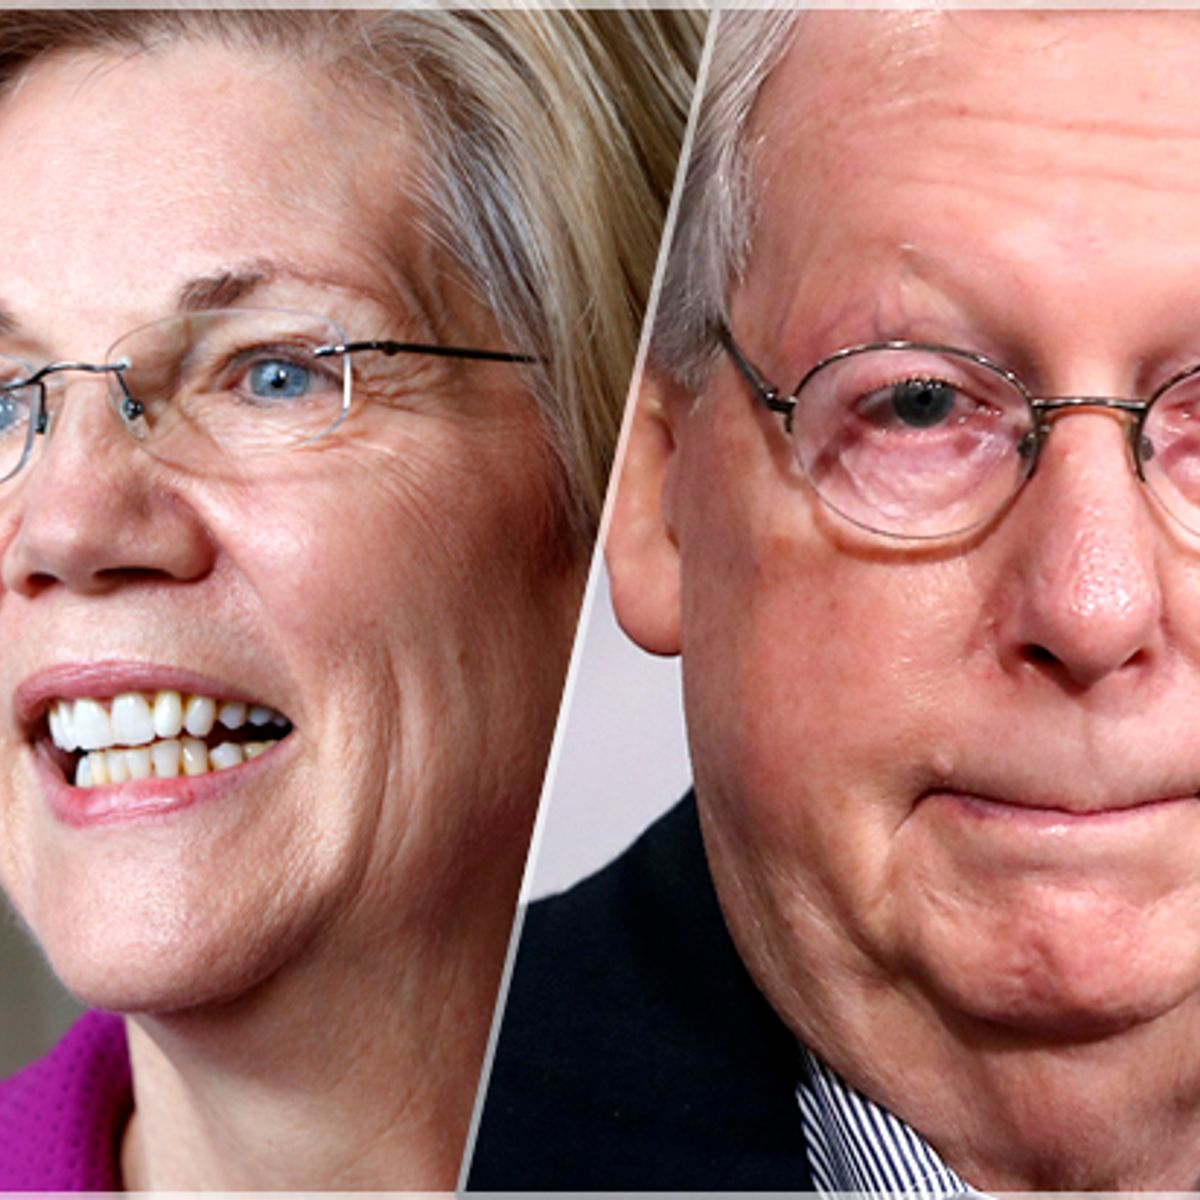 The GOP's new war on women: Mitch McConnell, Elizabeth Warren and the newly empowered sexism of the right